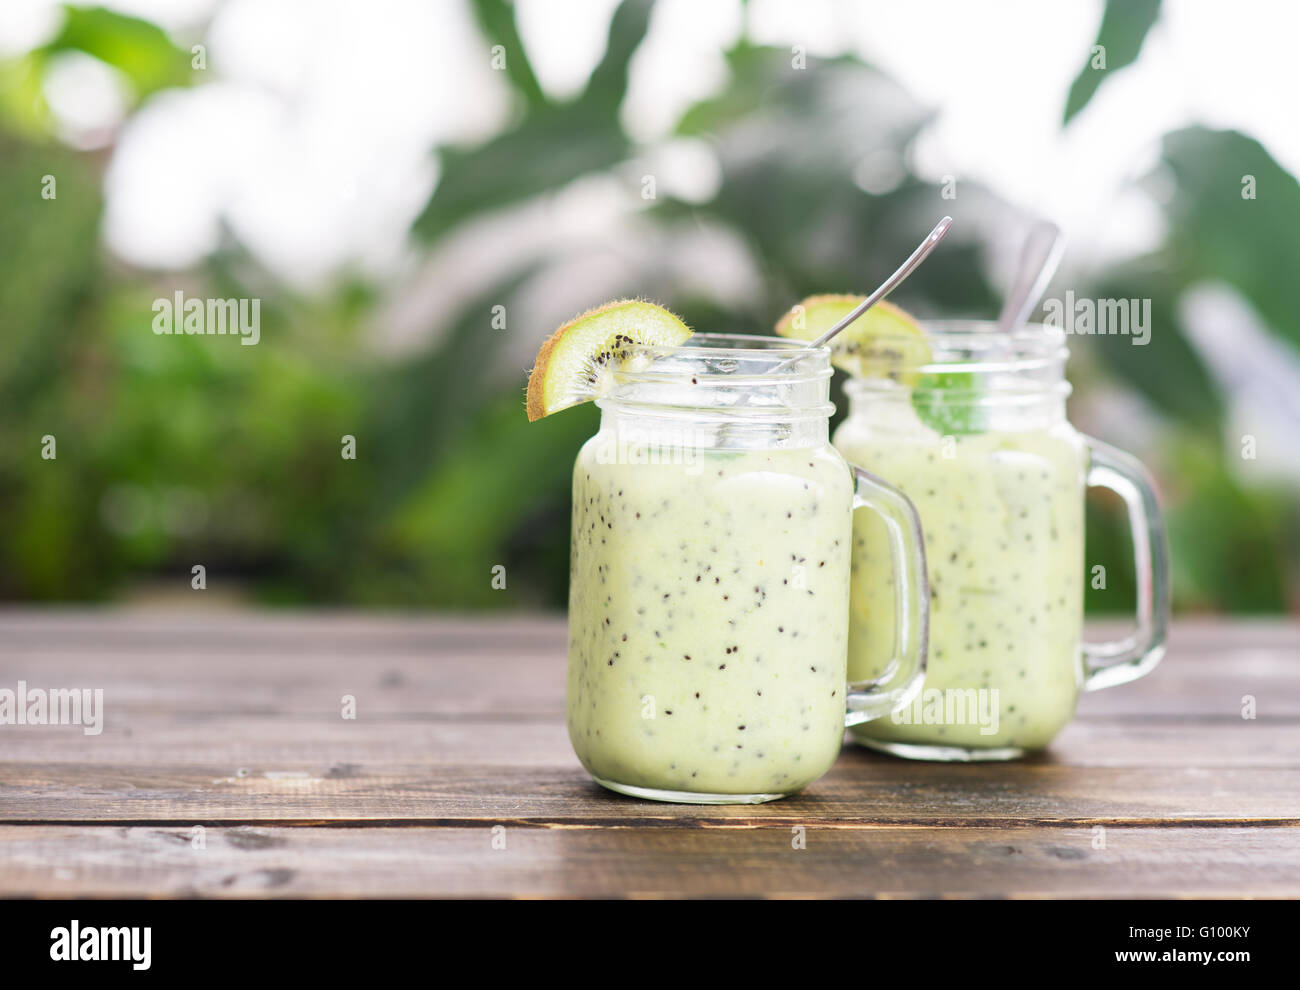 Kiwi green detox smoothie in two cups - Stock Image